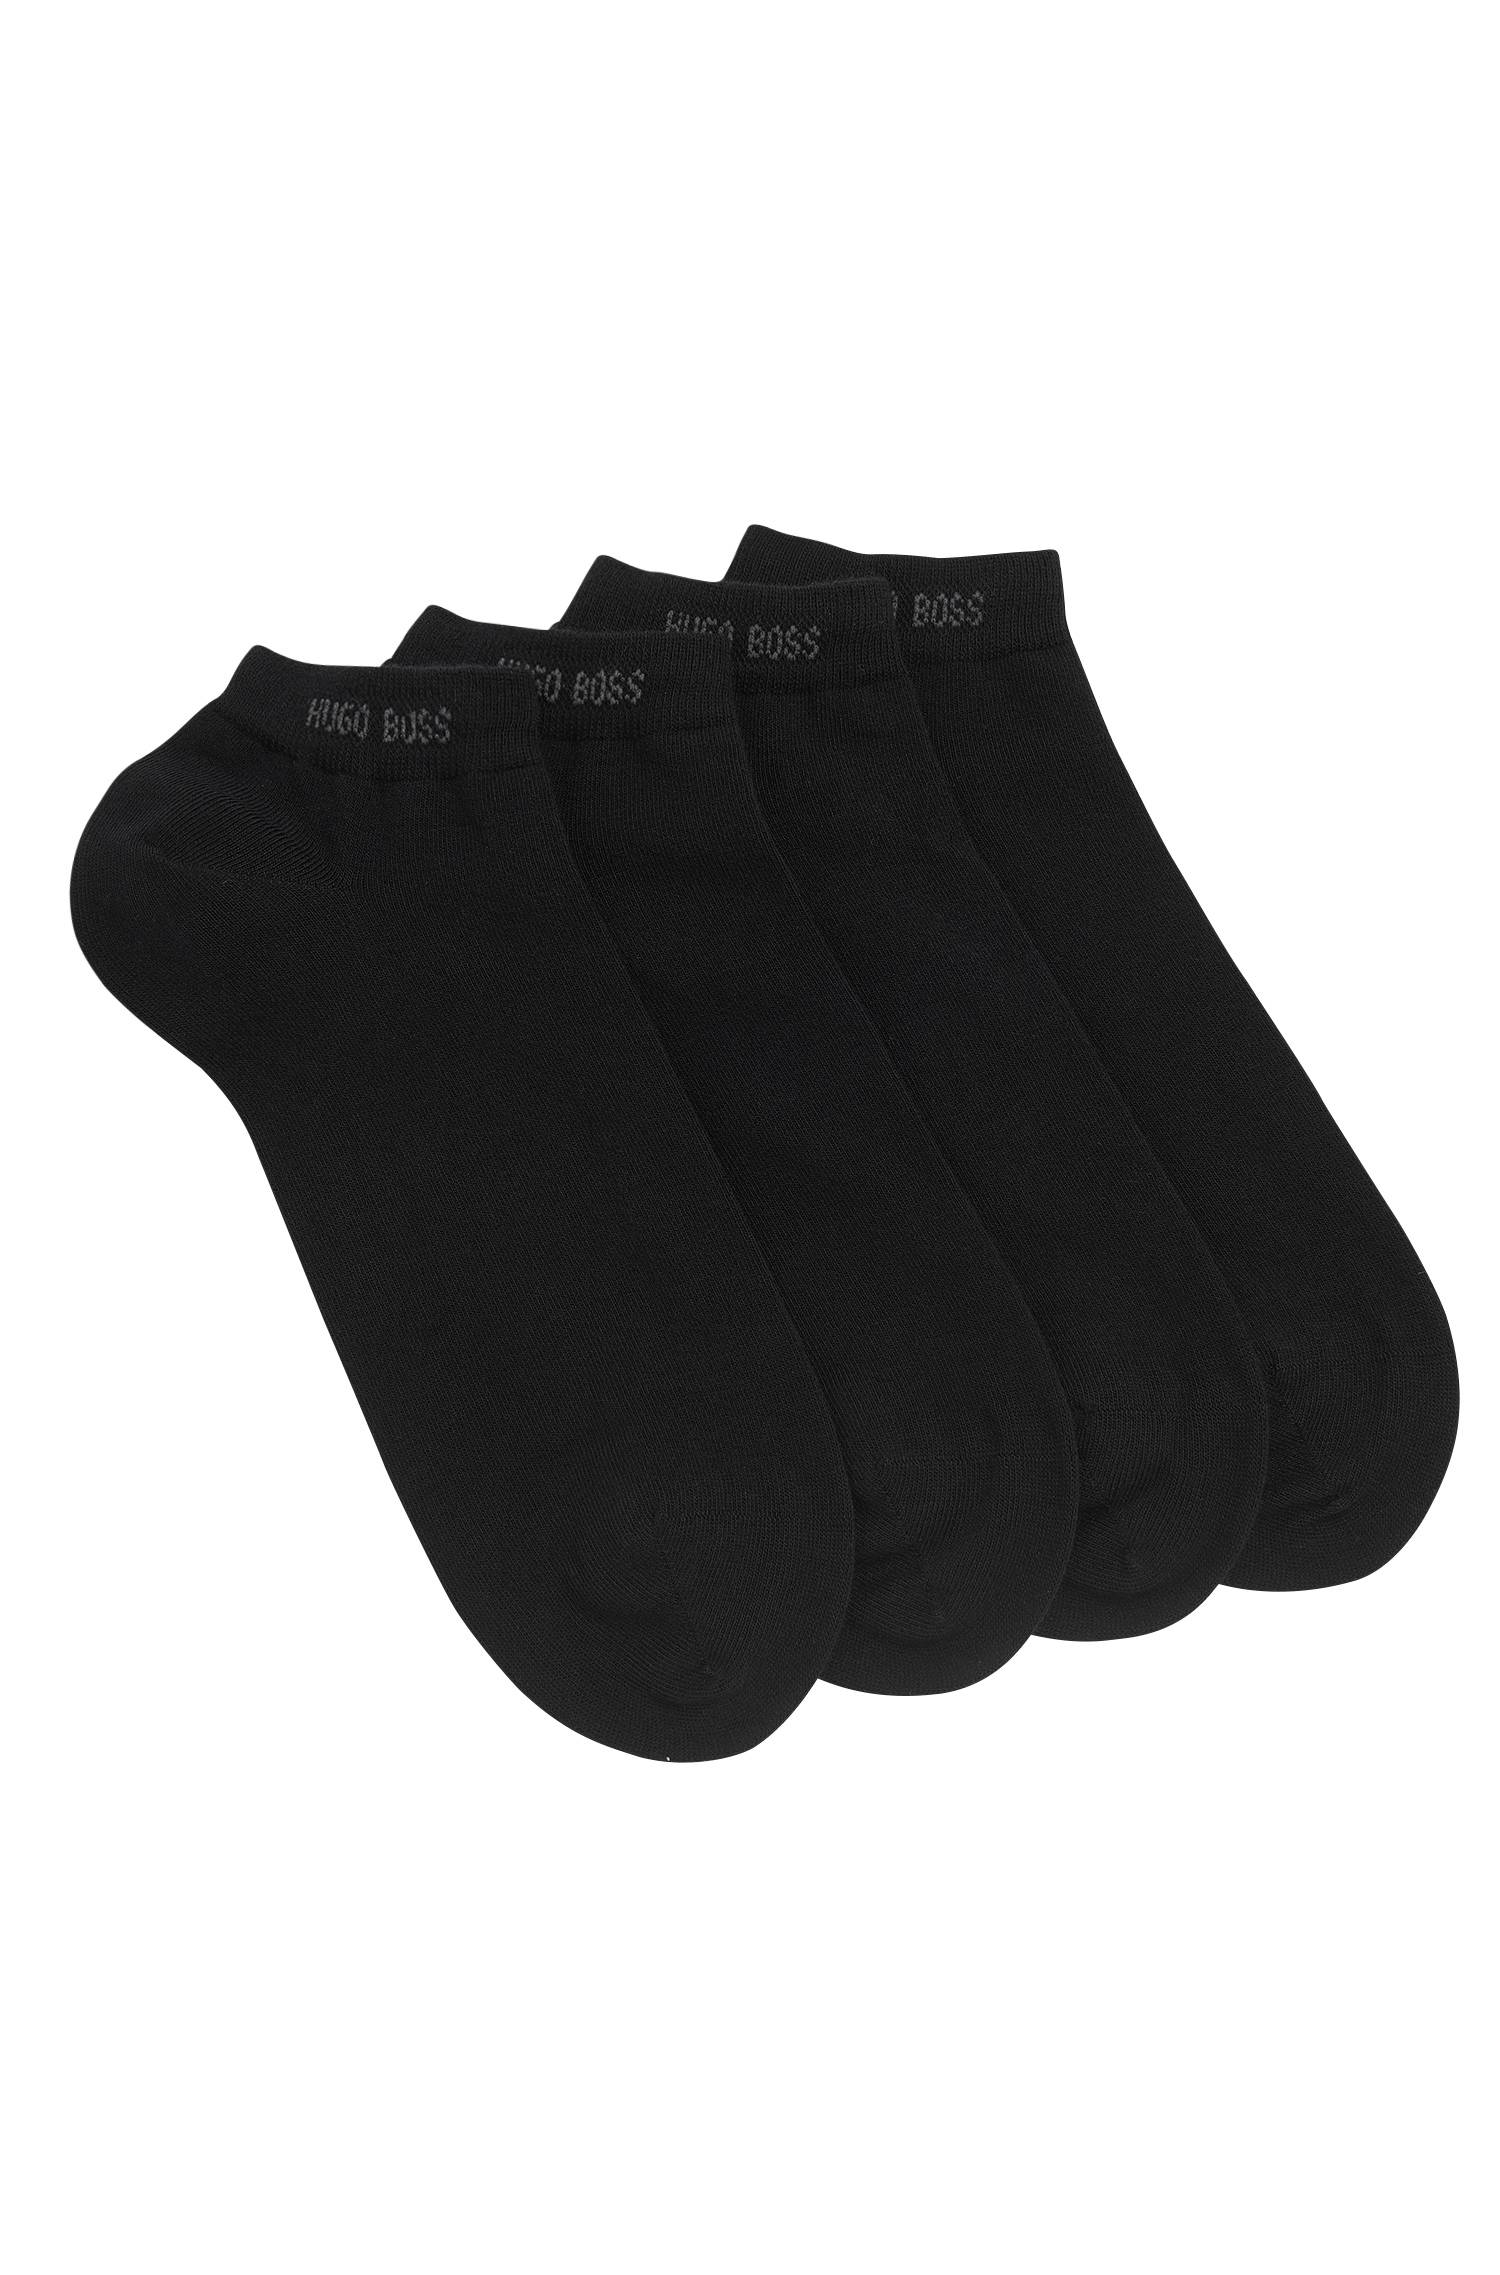 Twopack of ankle socks in cotton blend